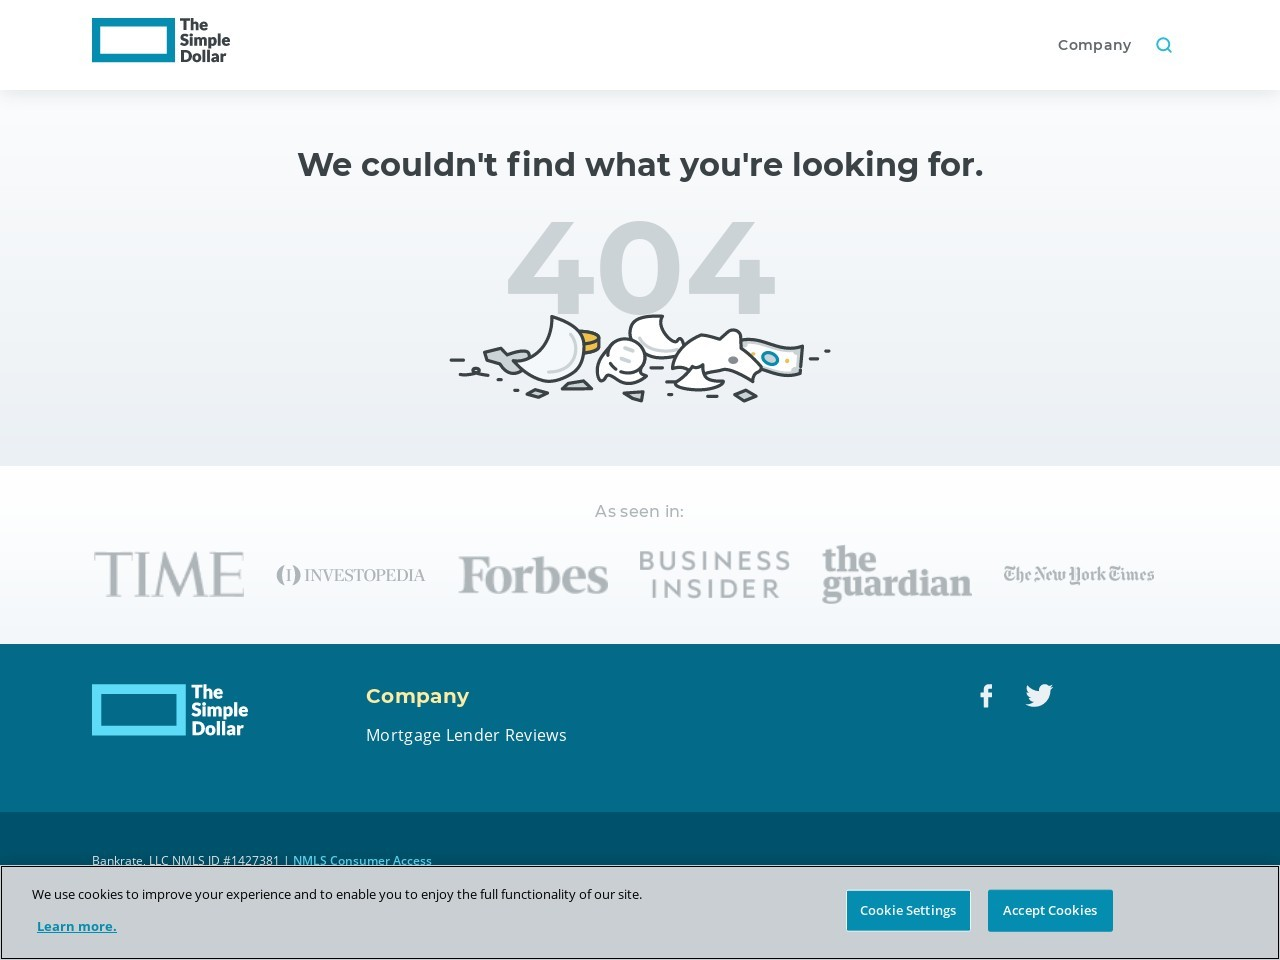 Seven Free Digital Resources to Check Out at Your Local Library